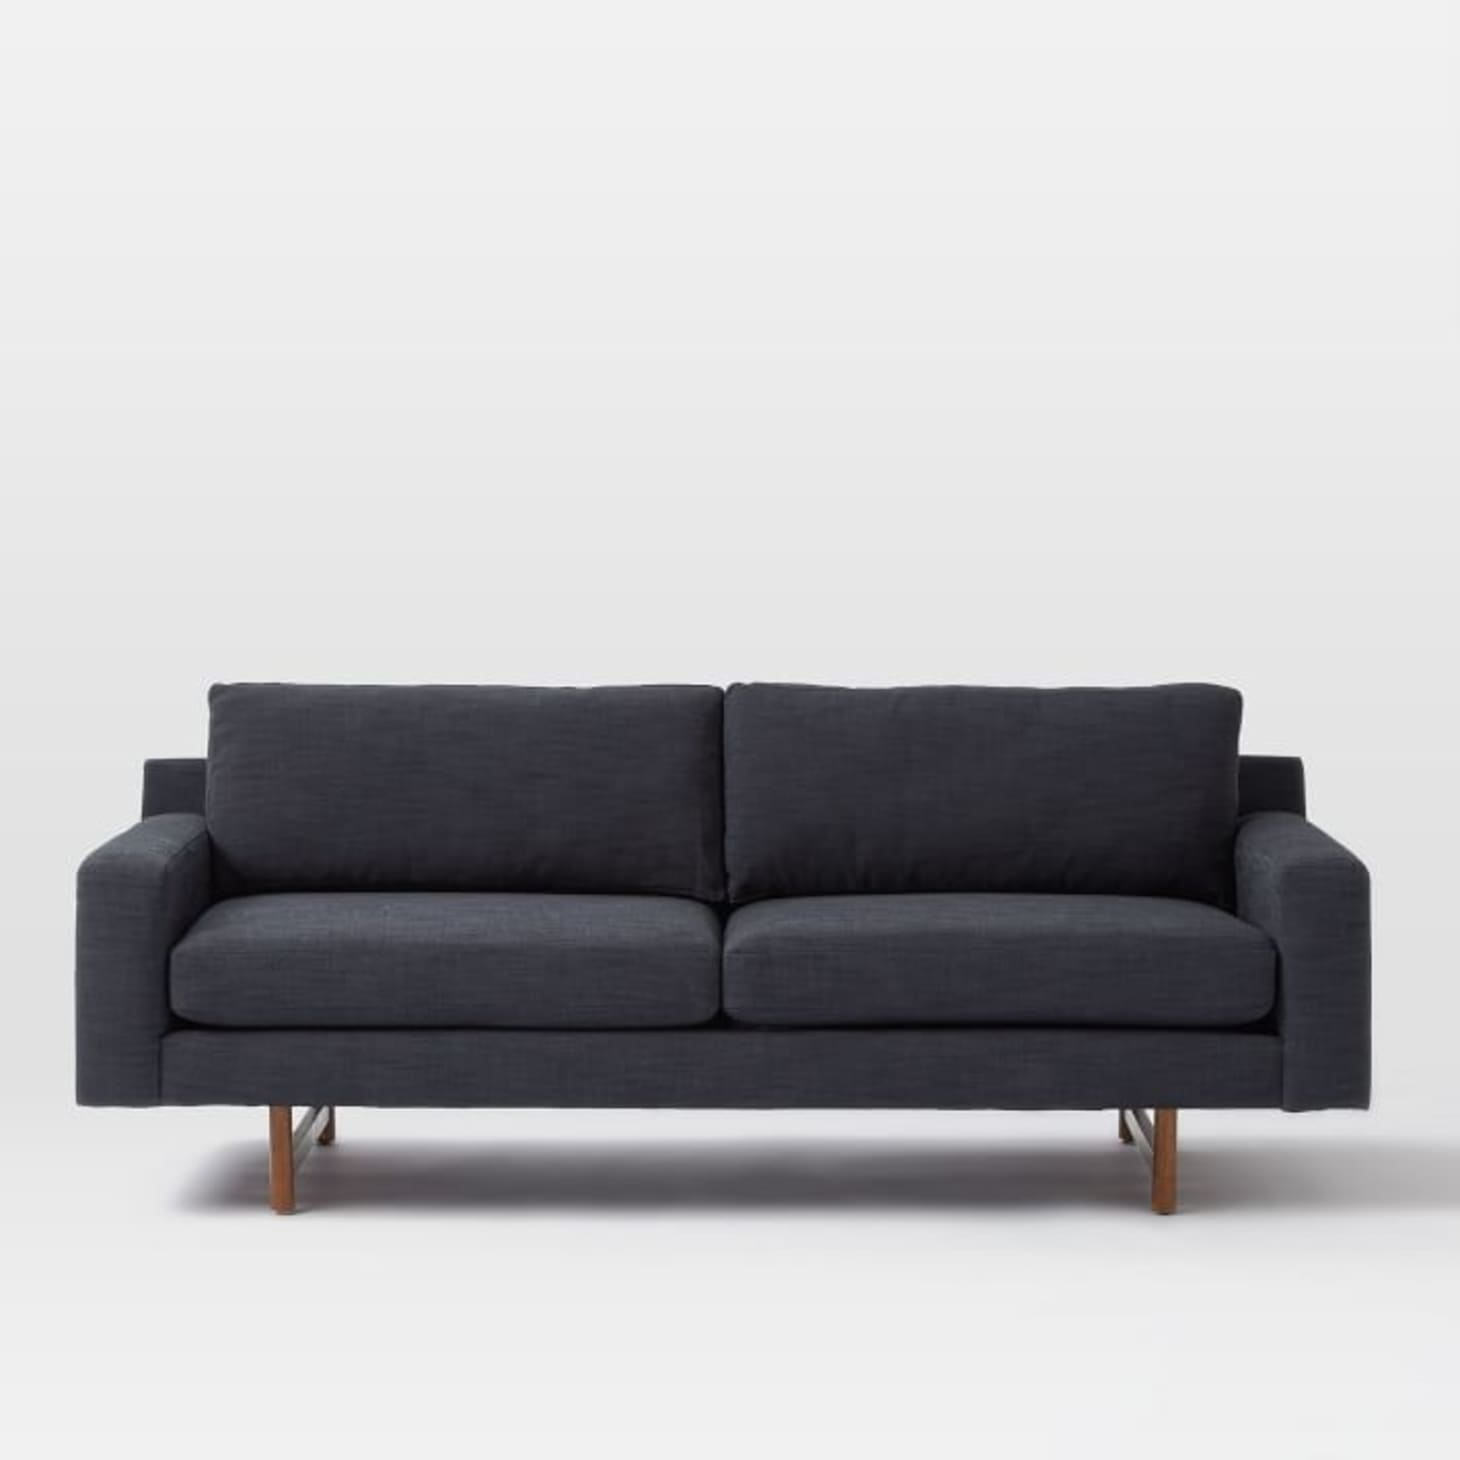 Swell The Most Comfortable Sofas At West Elm Tested Reviewed Ocoug Best Dining Table And Chair Ideas Images Ocougorg